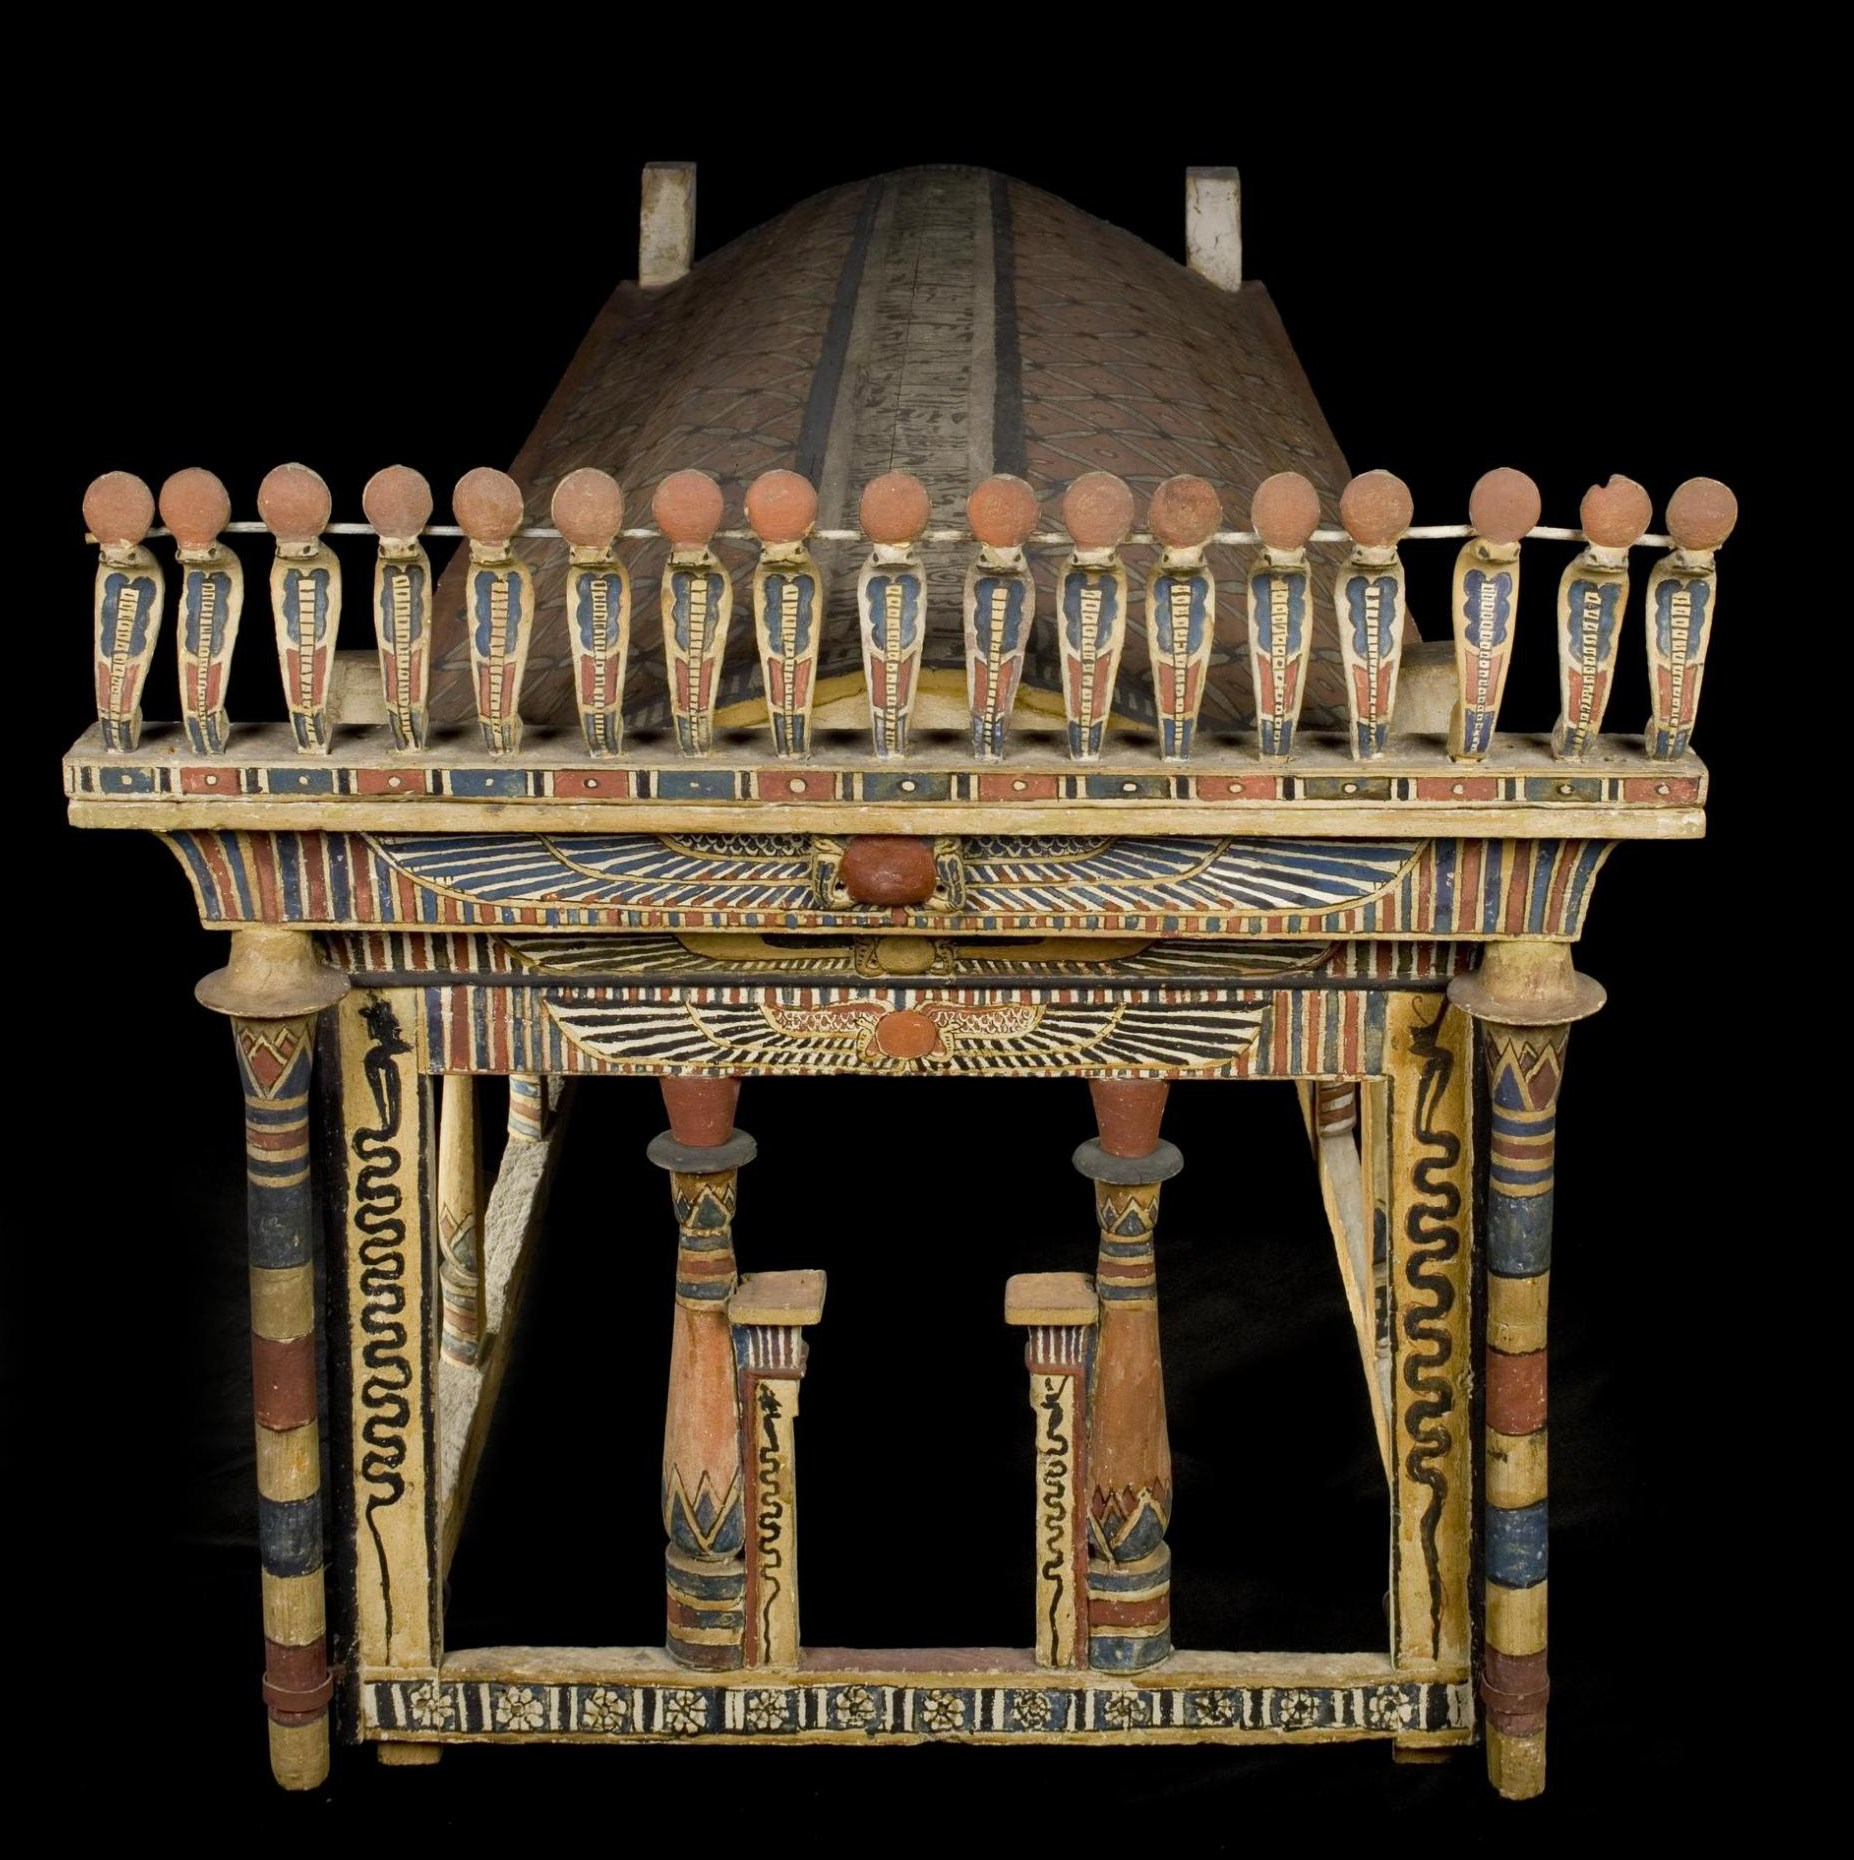 Canopy of sycamore-fig wood painted in red, black, blue, yellow and white in the shape of a shrine, with an arched roof and corner-posts : Ancient Egyptian, excavated at Sheikh Abd el-Qurna, Thebes, c.9BC.